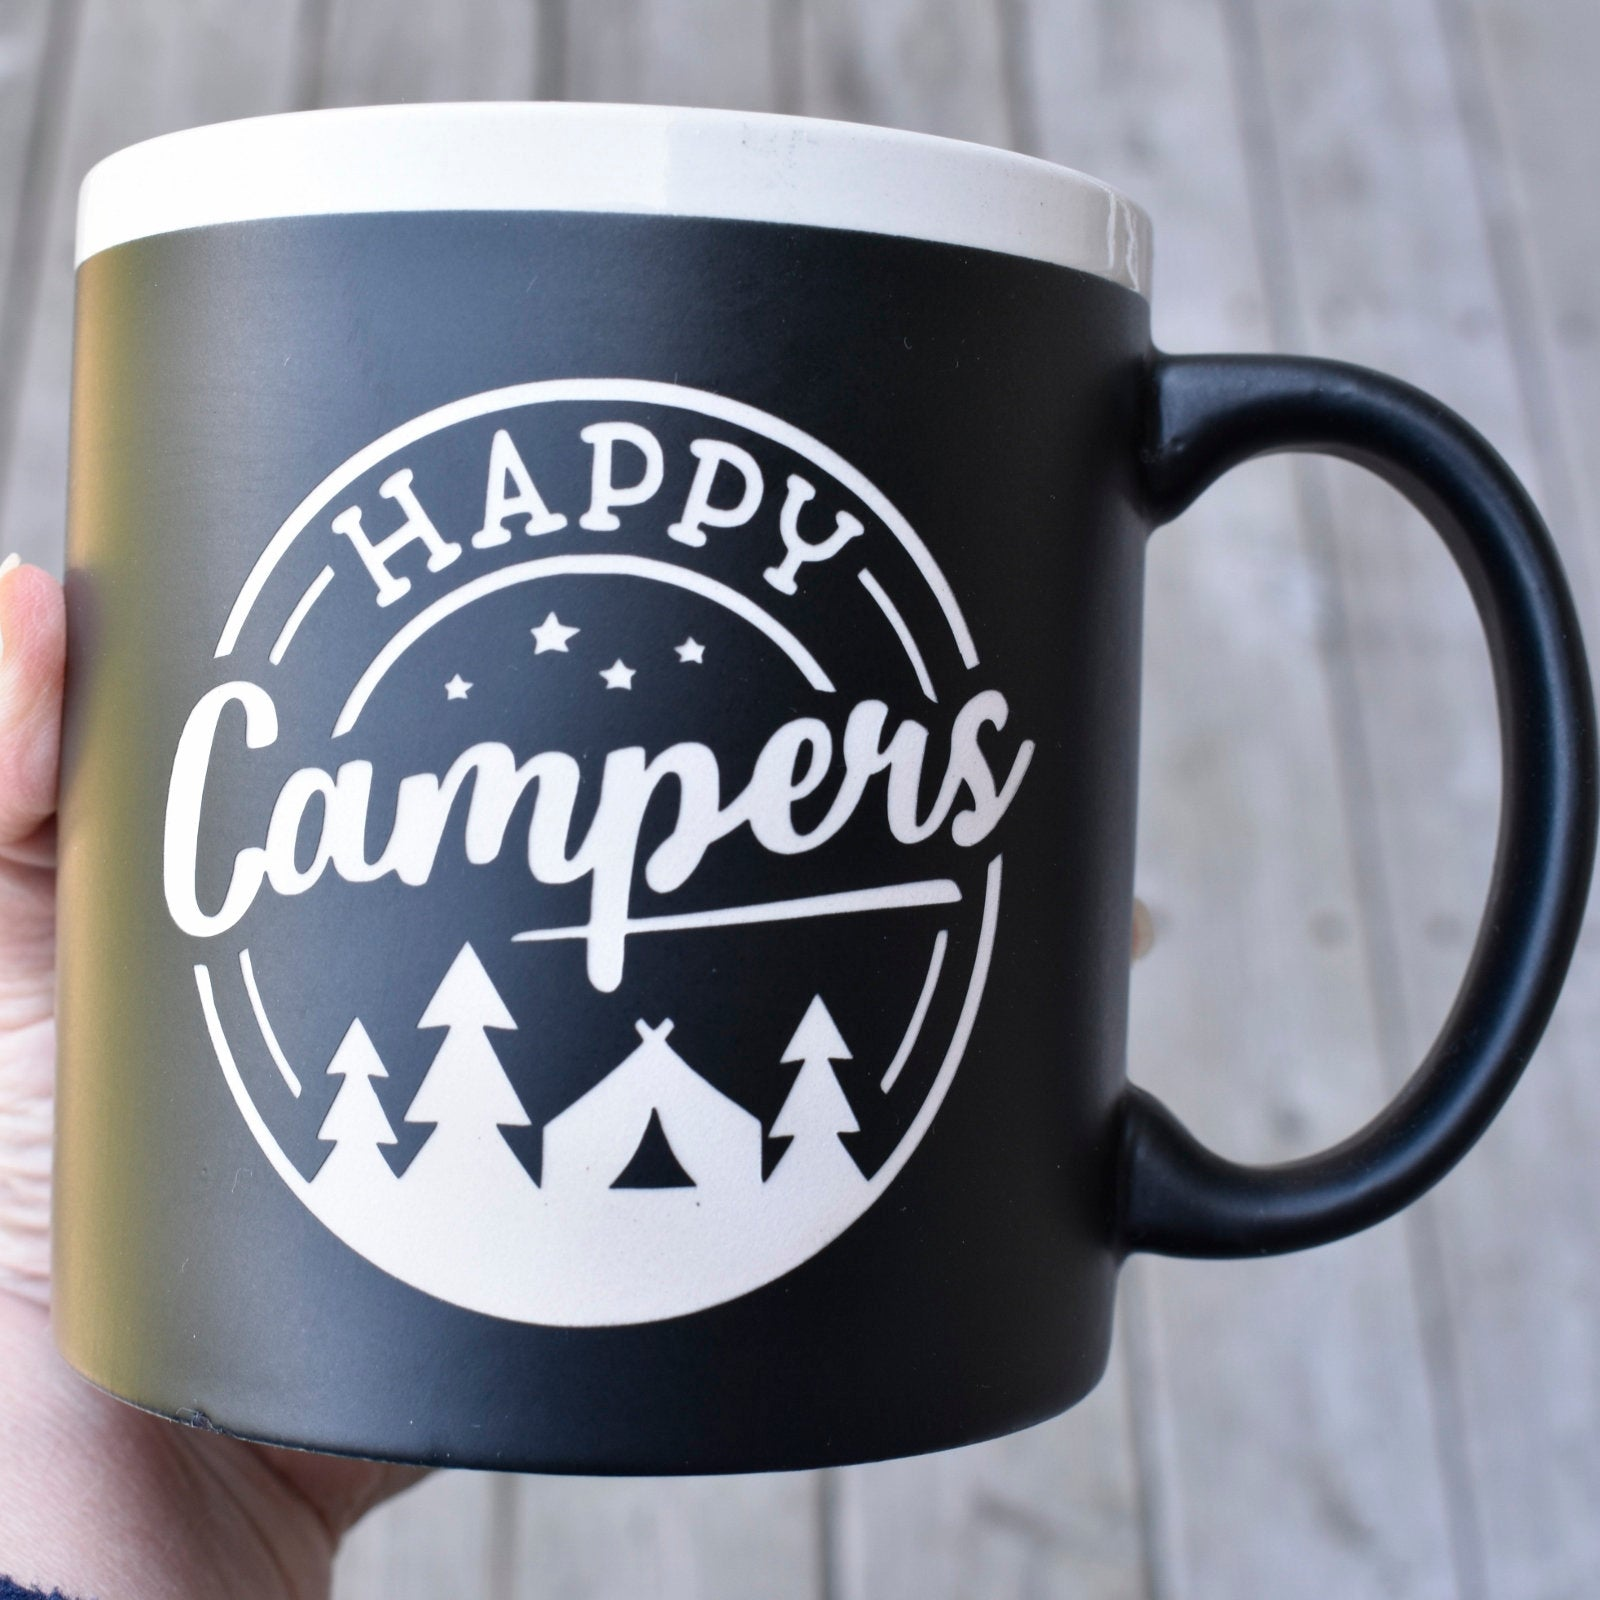 Jumbo Chalkboard Happy Campers Coffee Mug | Message Coffee Mug | Outdoor Lover Gift | Camp Coffee Cup | Camper Mug Gift | Camping Gift